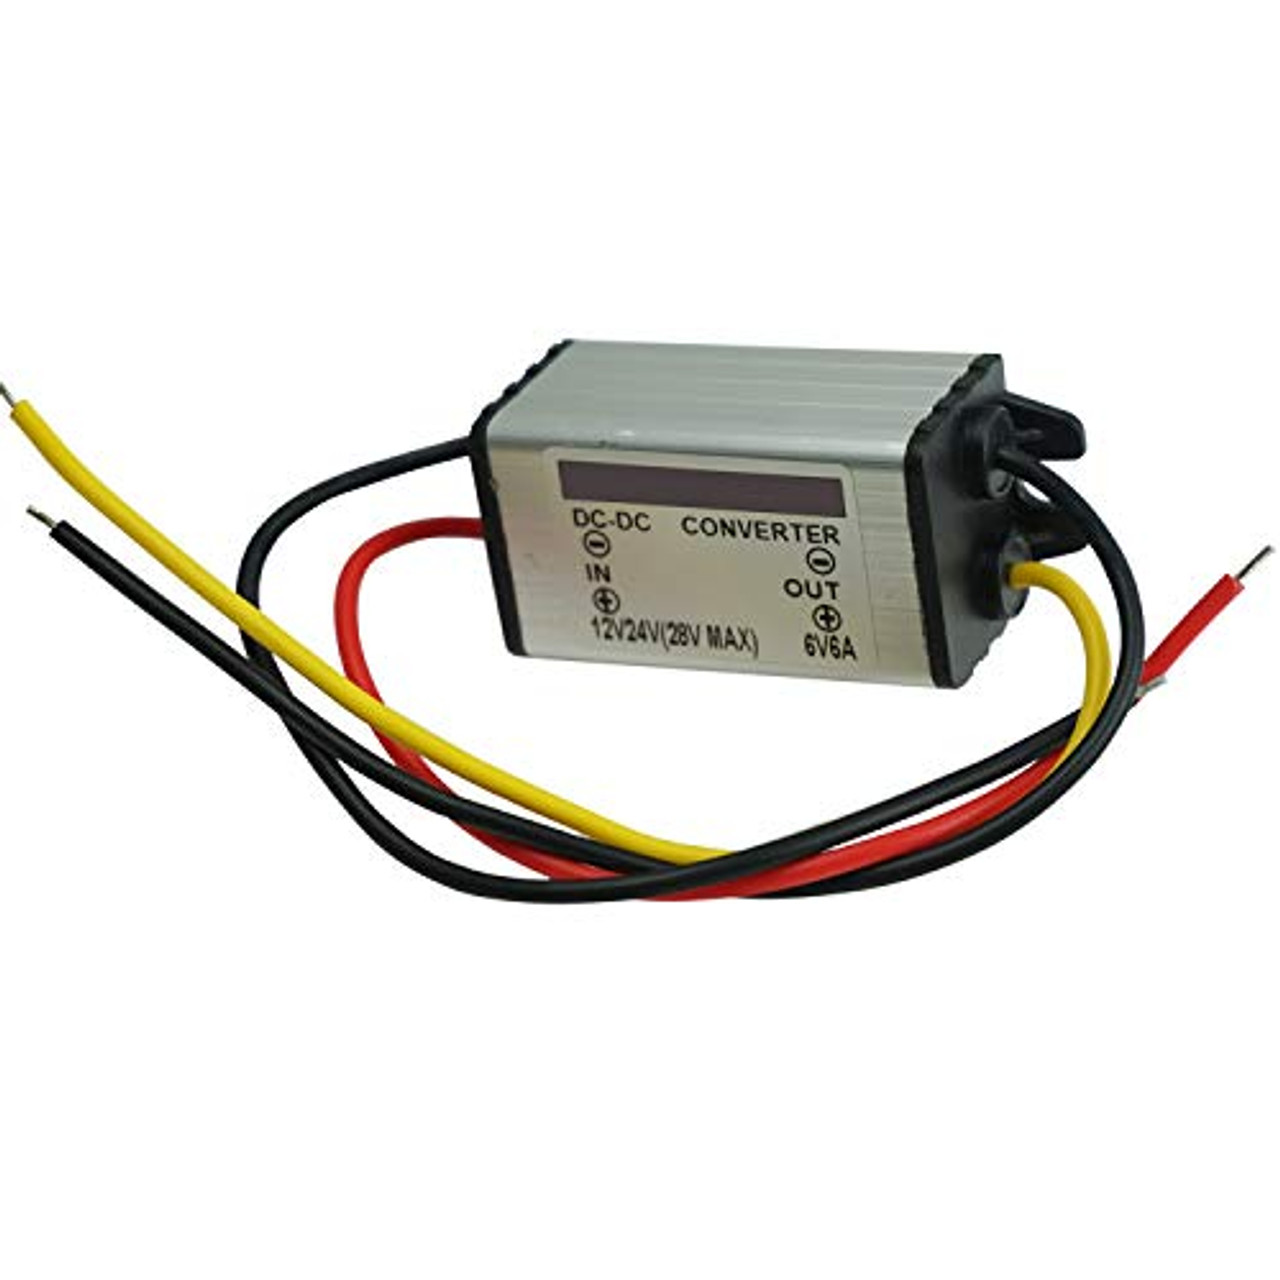 Proshopping Dc Converter Regulator 12v Step Down To 6v 6a 36w Voltage Reducer Dc Dc Power Supply Module Buck Transformer Waterproof For Car Truck Vehicle Boat Toyboxtech